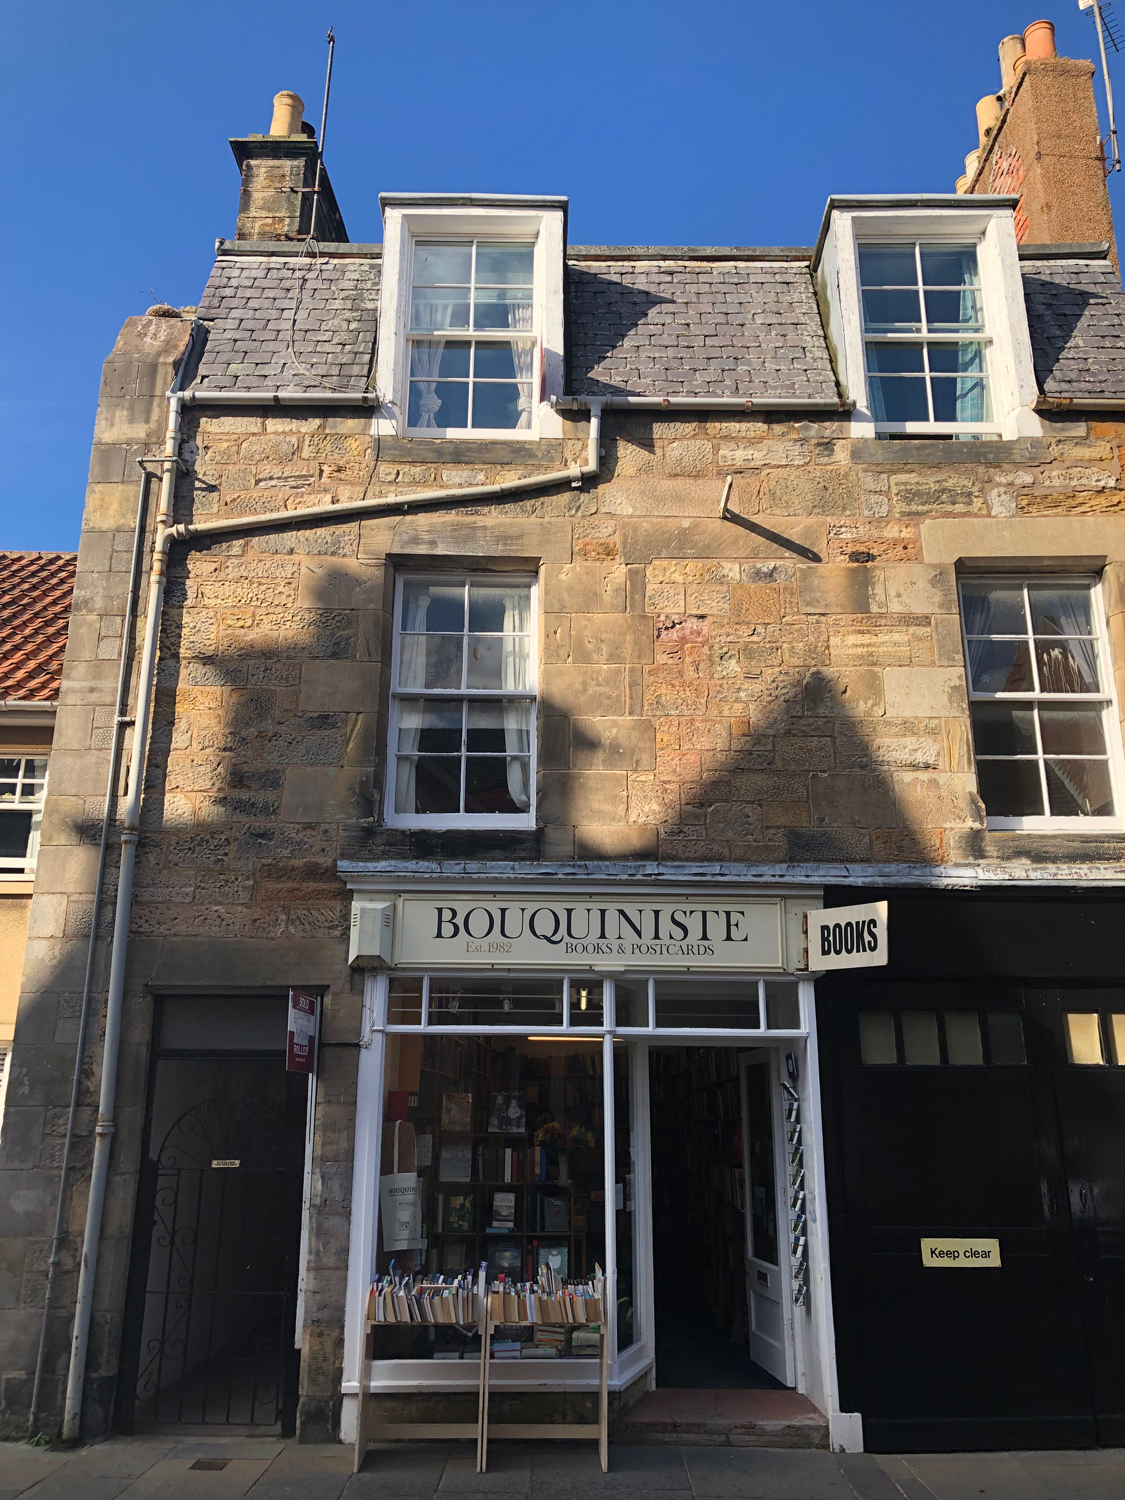 Bouquiniste Bookstore